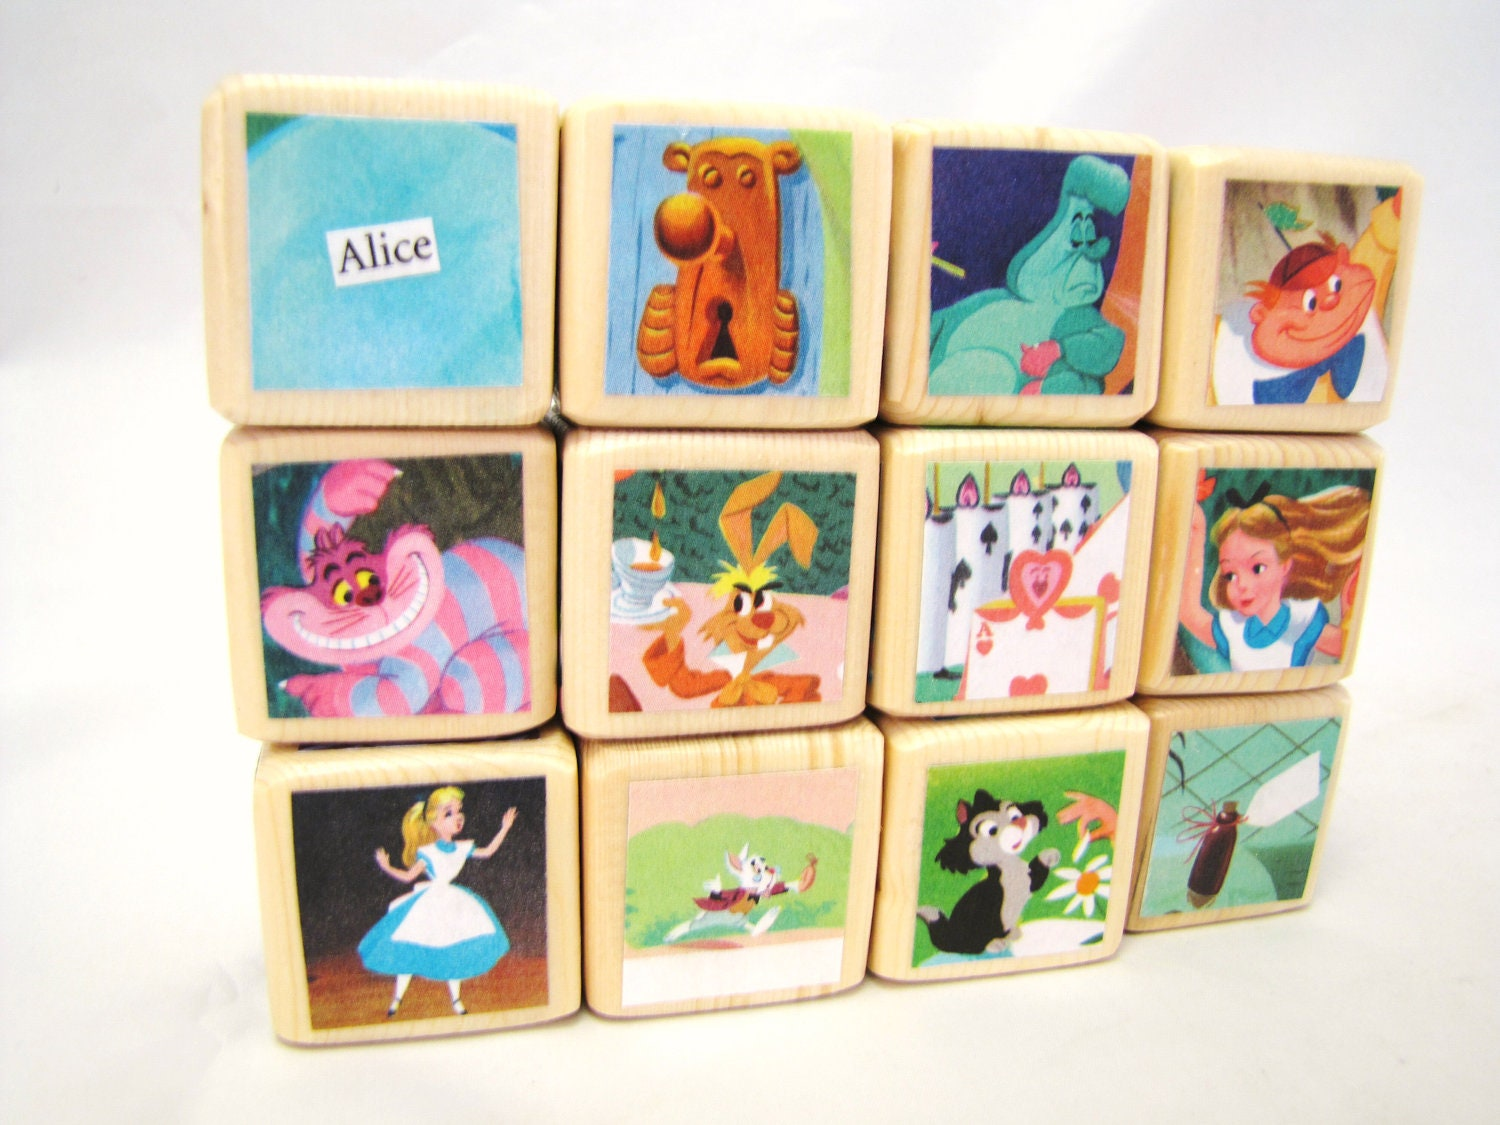 Alice in wonderland baby room decorations photograph sale for Room decoration items sale